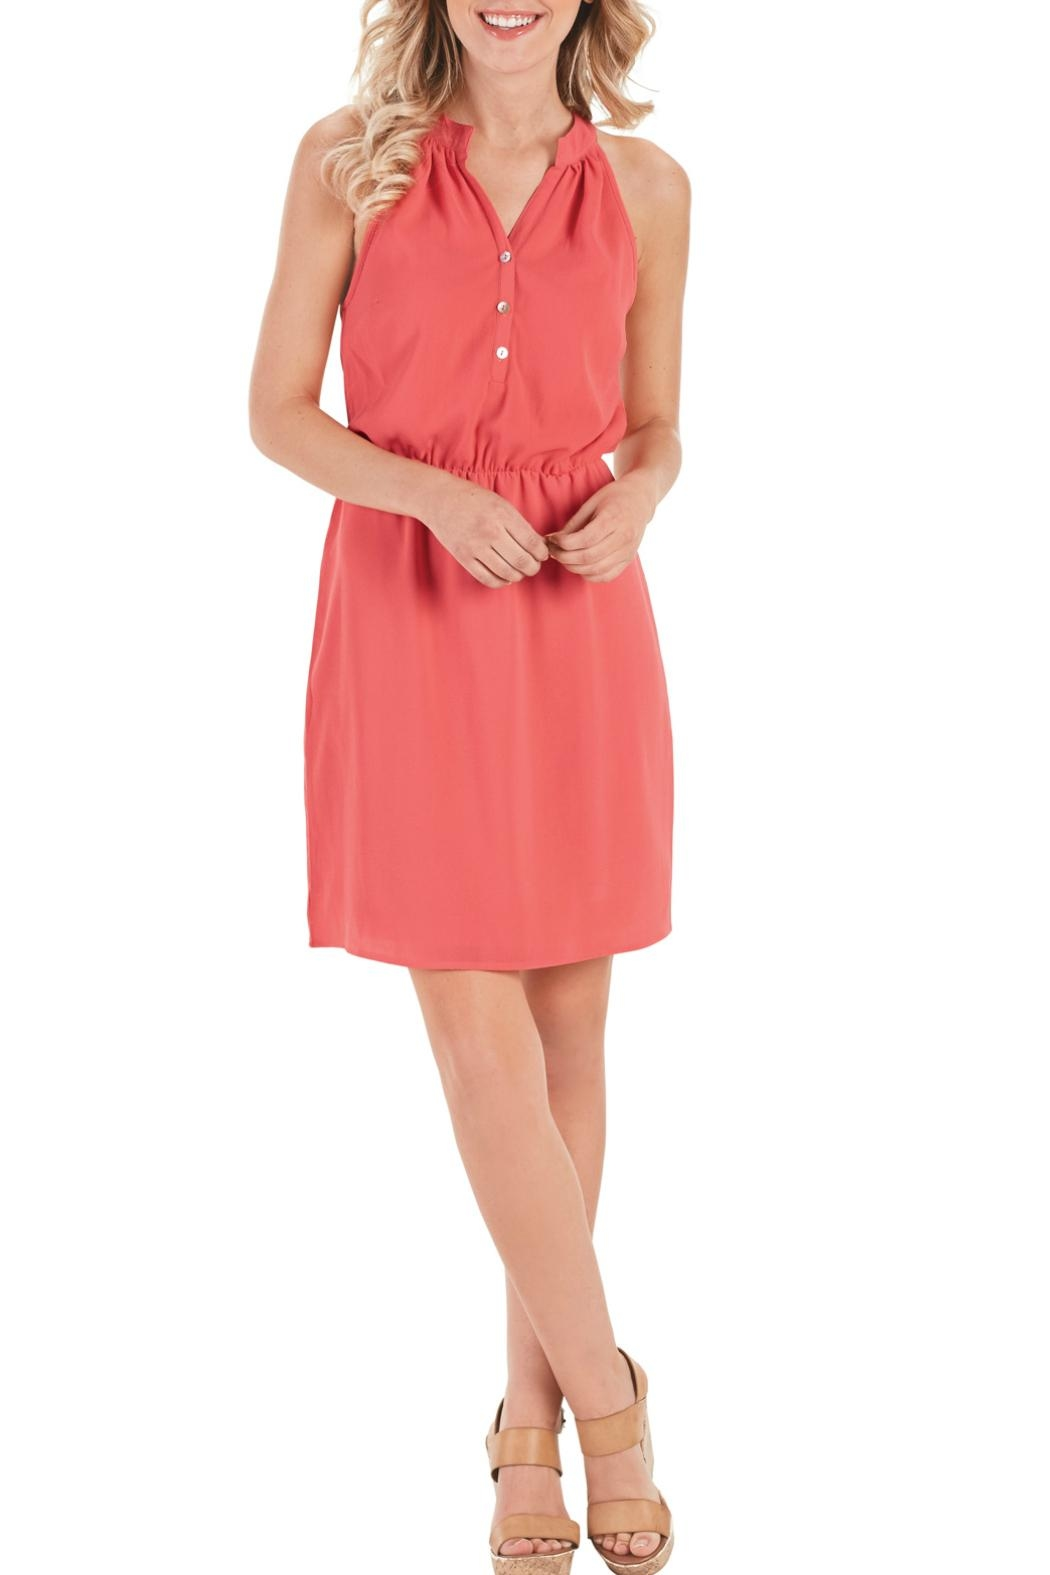 Mud Pie Sleeveless Coral Dress - Front Cropped Image